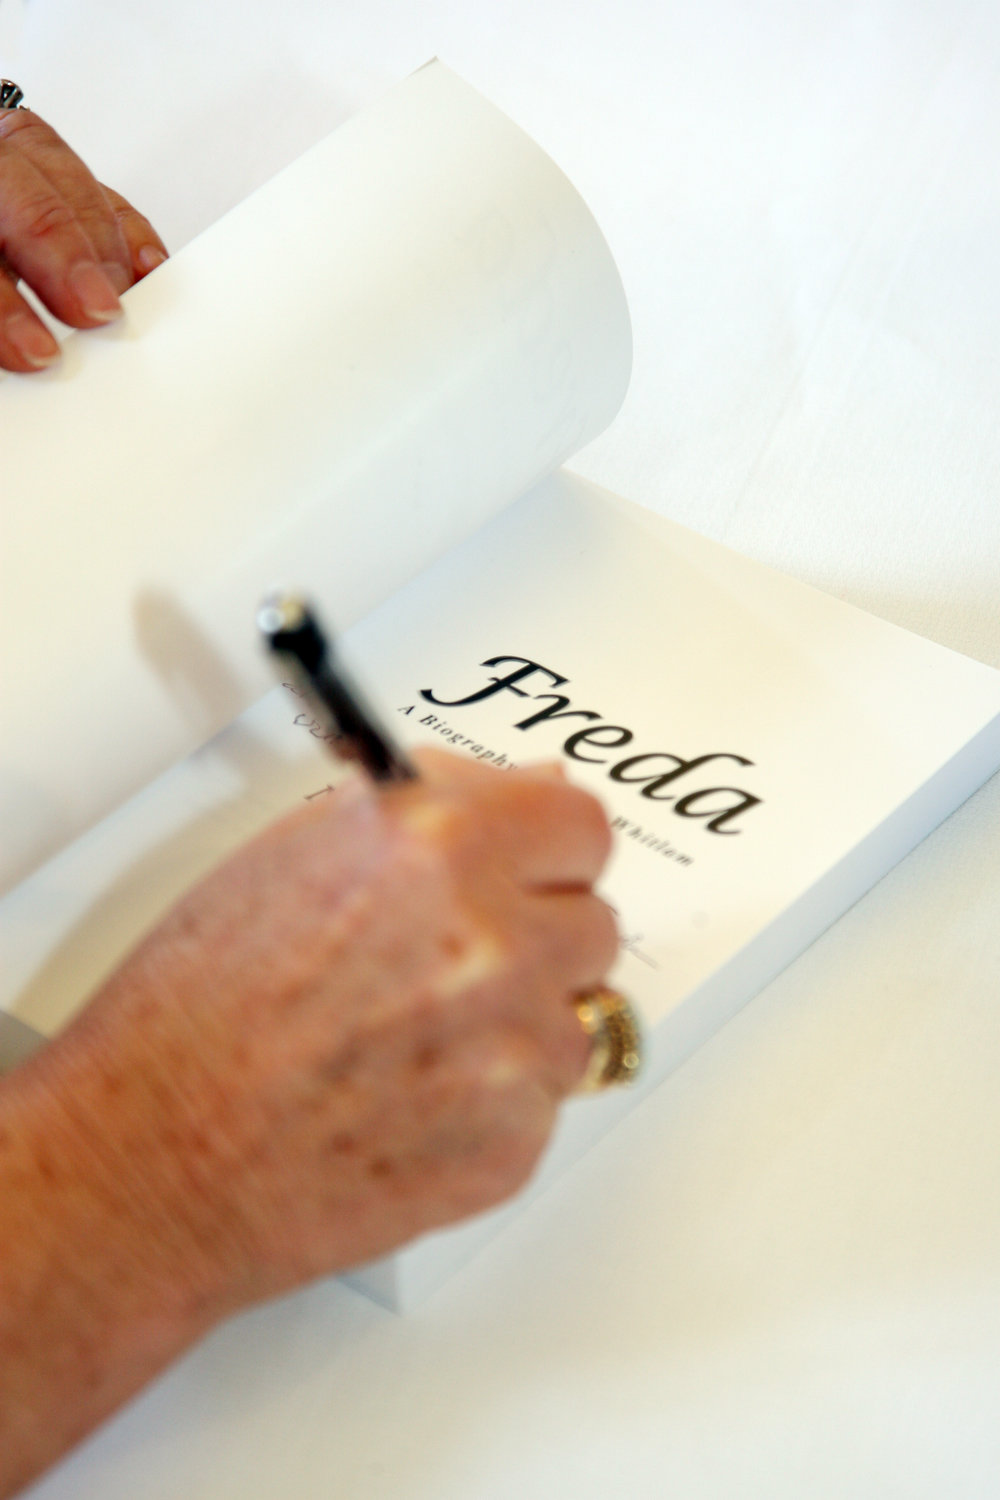 Freda Whitlam signs her biography, authored by Noelene Martin, 2009.